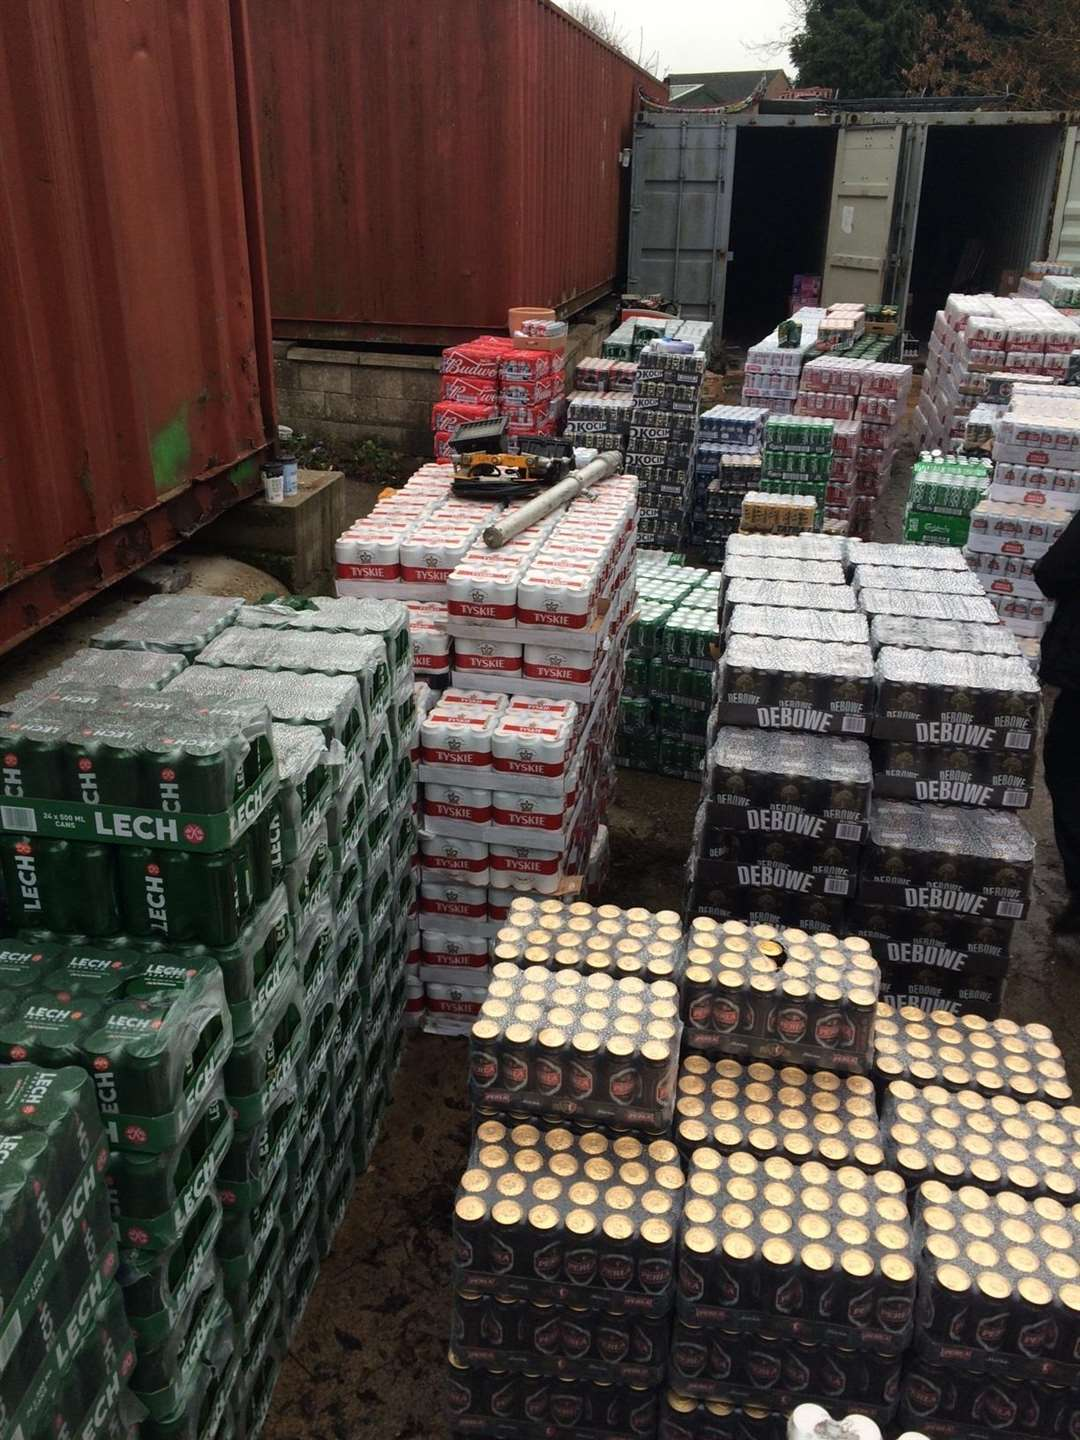 Massive counterfeit cigarett and alcohol siezure in Grantham. (5833770)